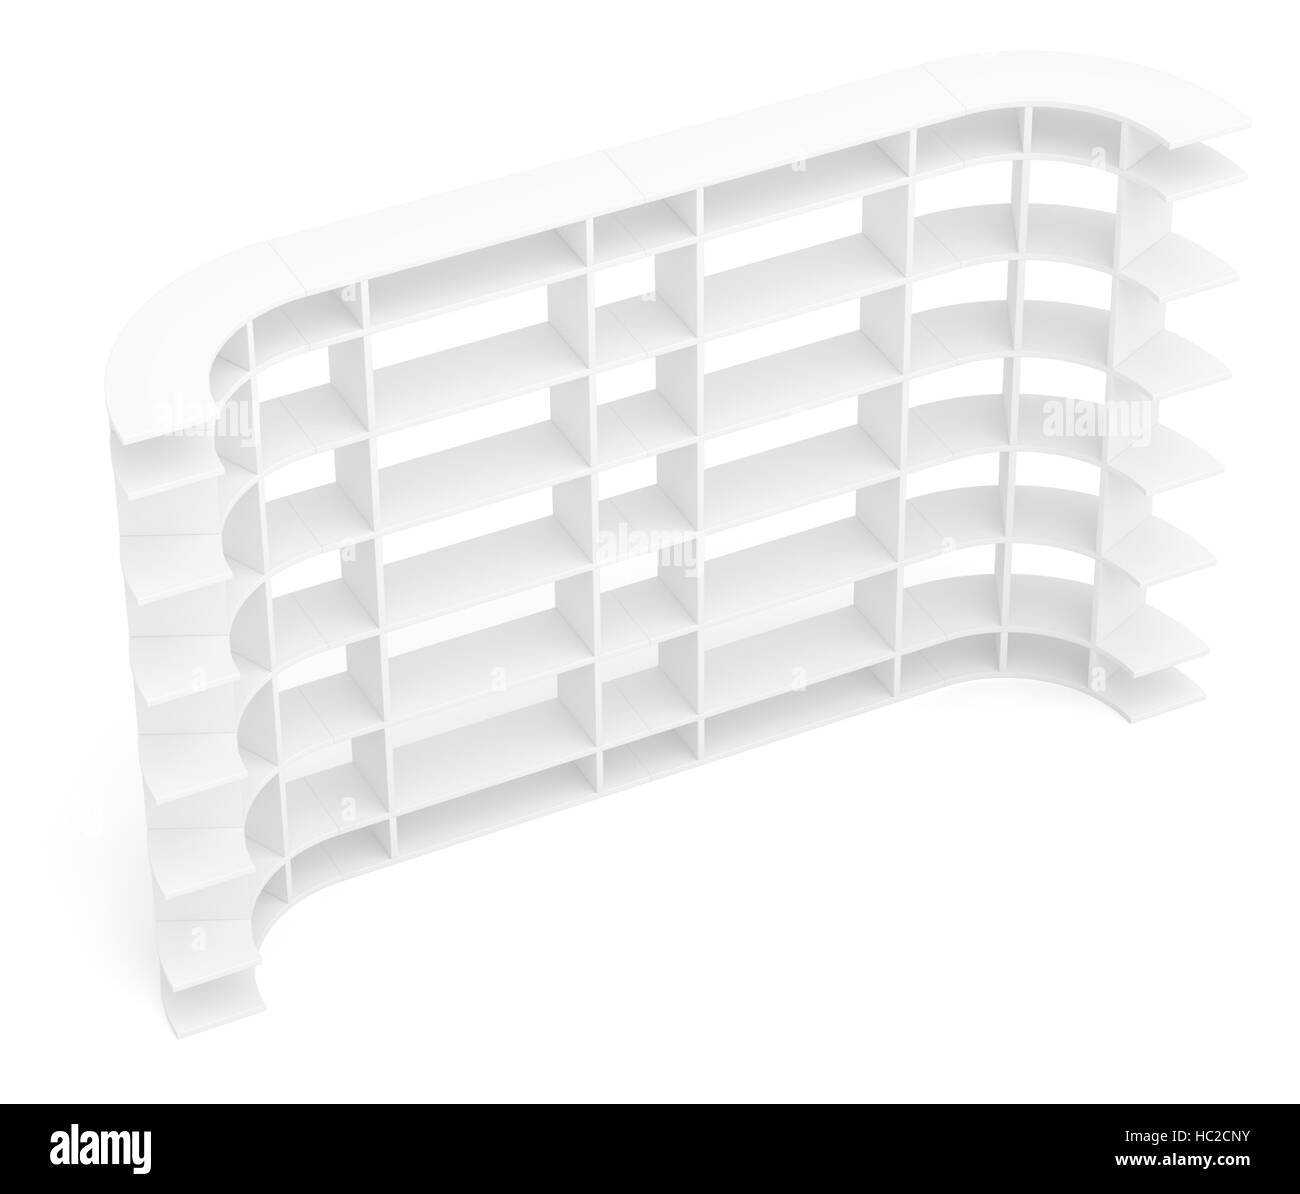 Big empty book shelves or rack. Top view Stock Photo